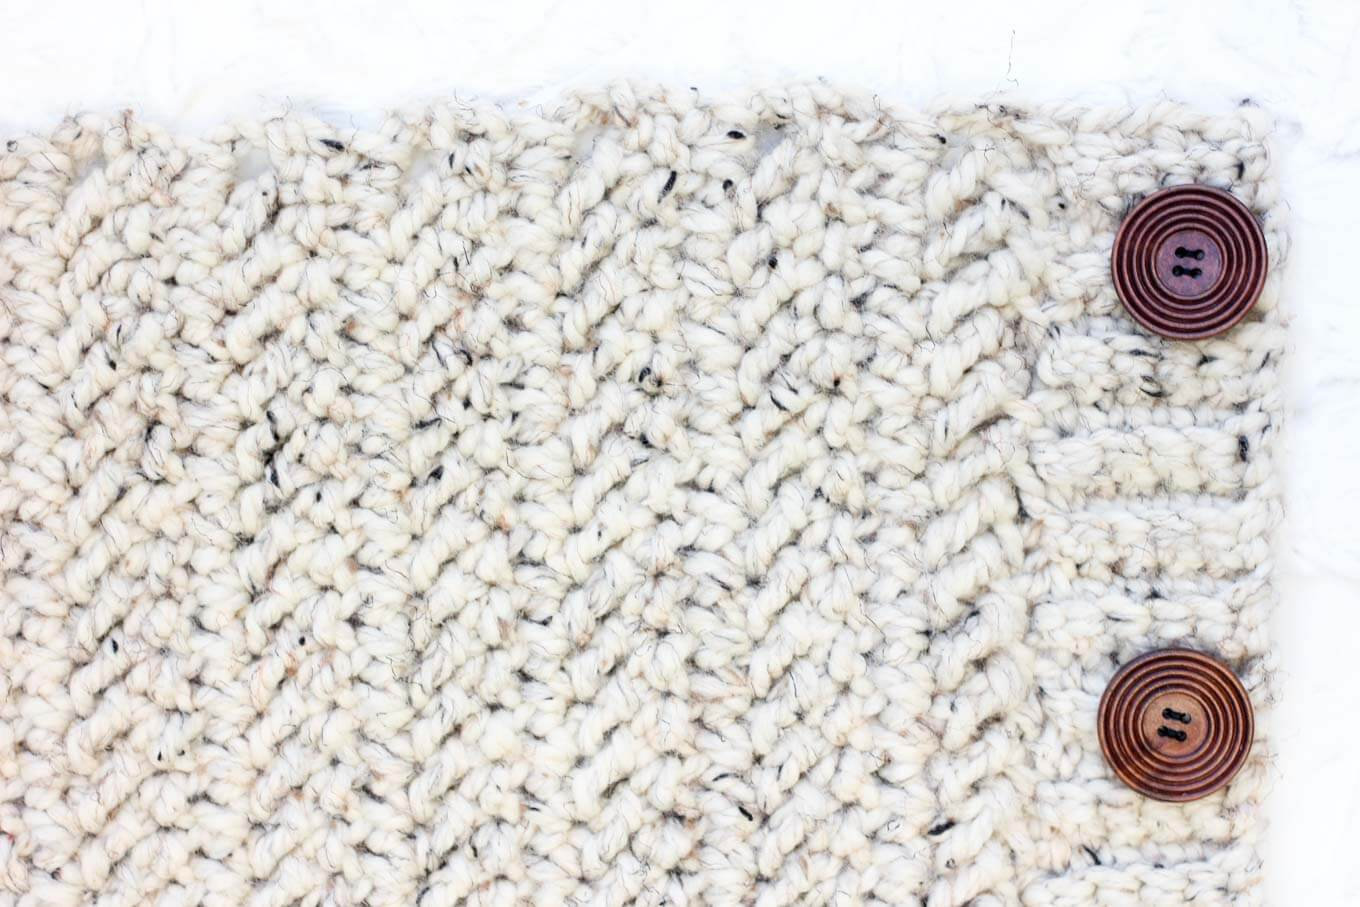 Crochet Stitch Herringbone : Learn how to crochet the herringbone double crochet stitch in this ...